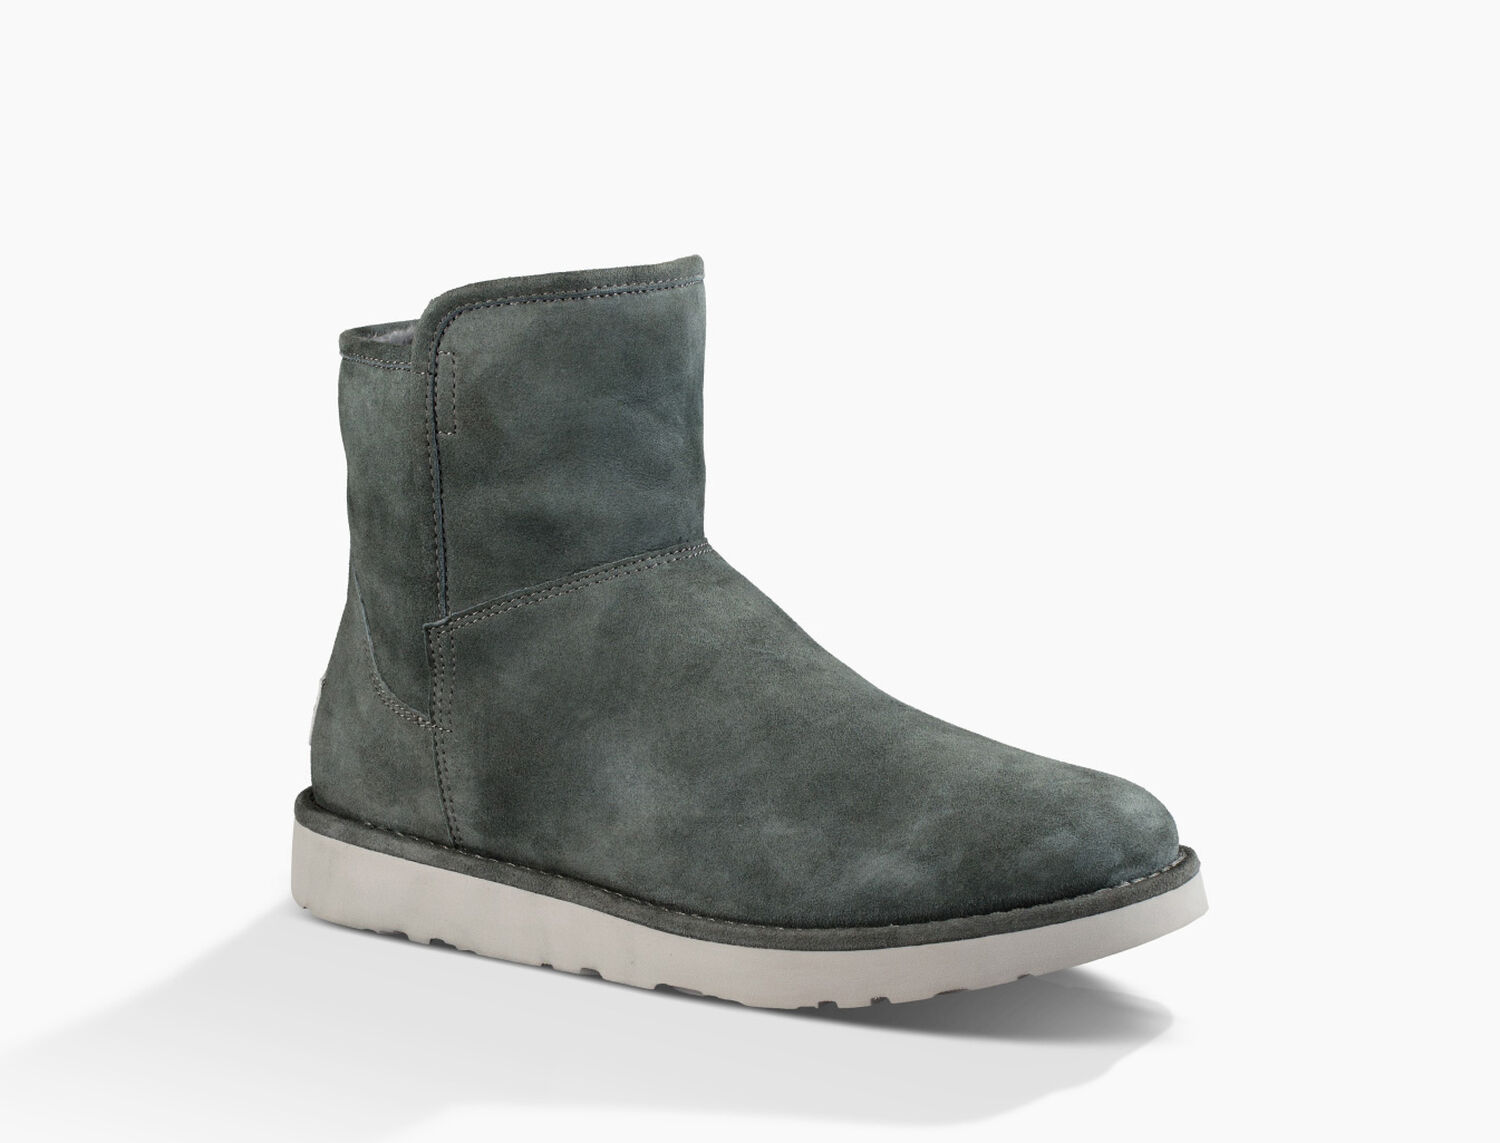 free uggs boots